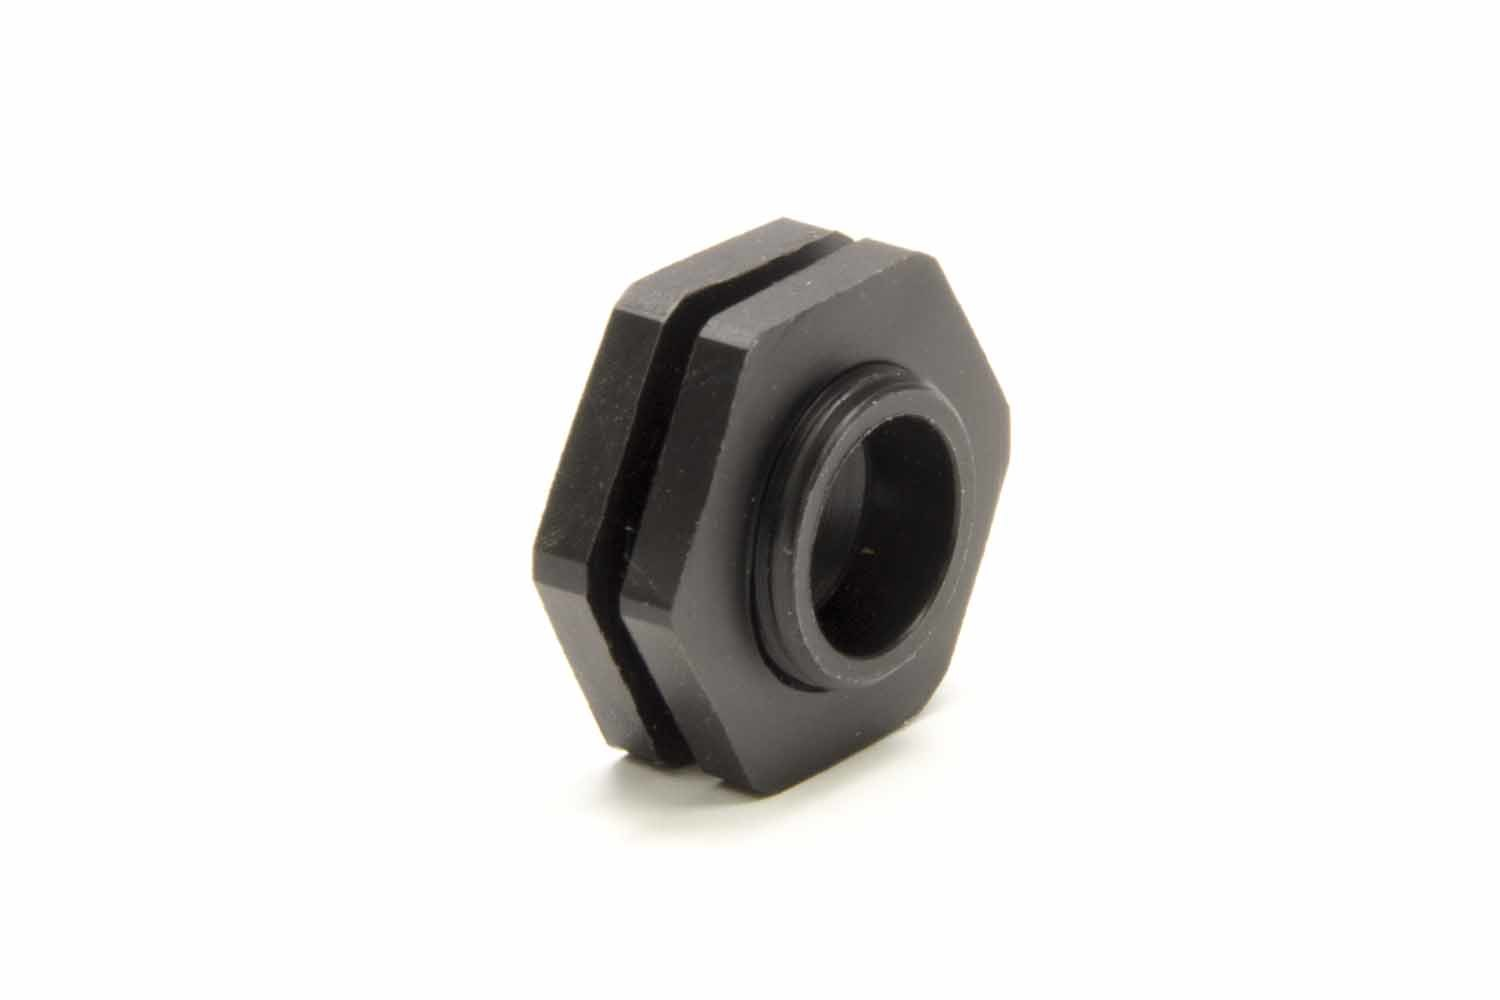 Snow Performance Nozzle Mounting Adapter